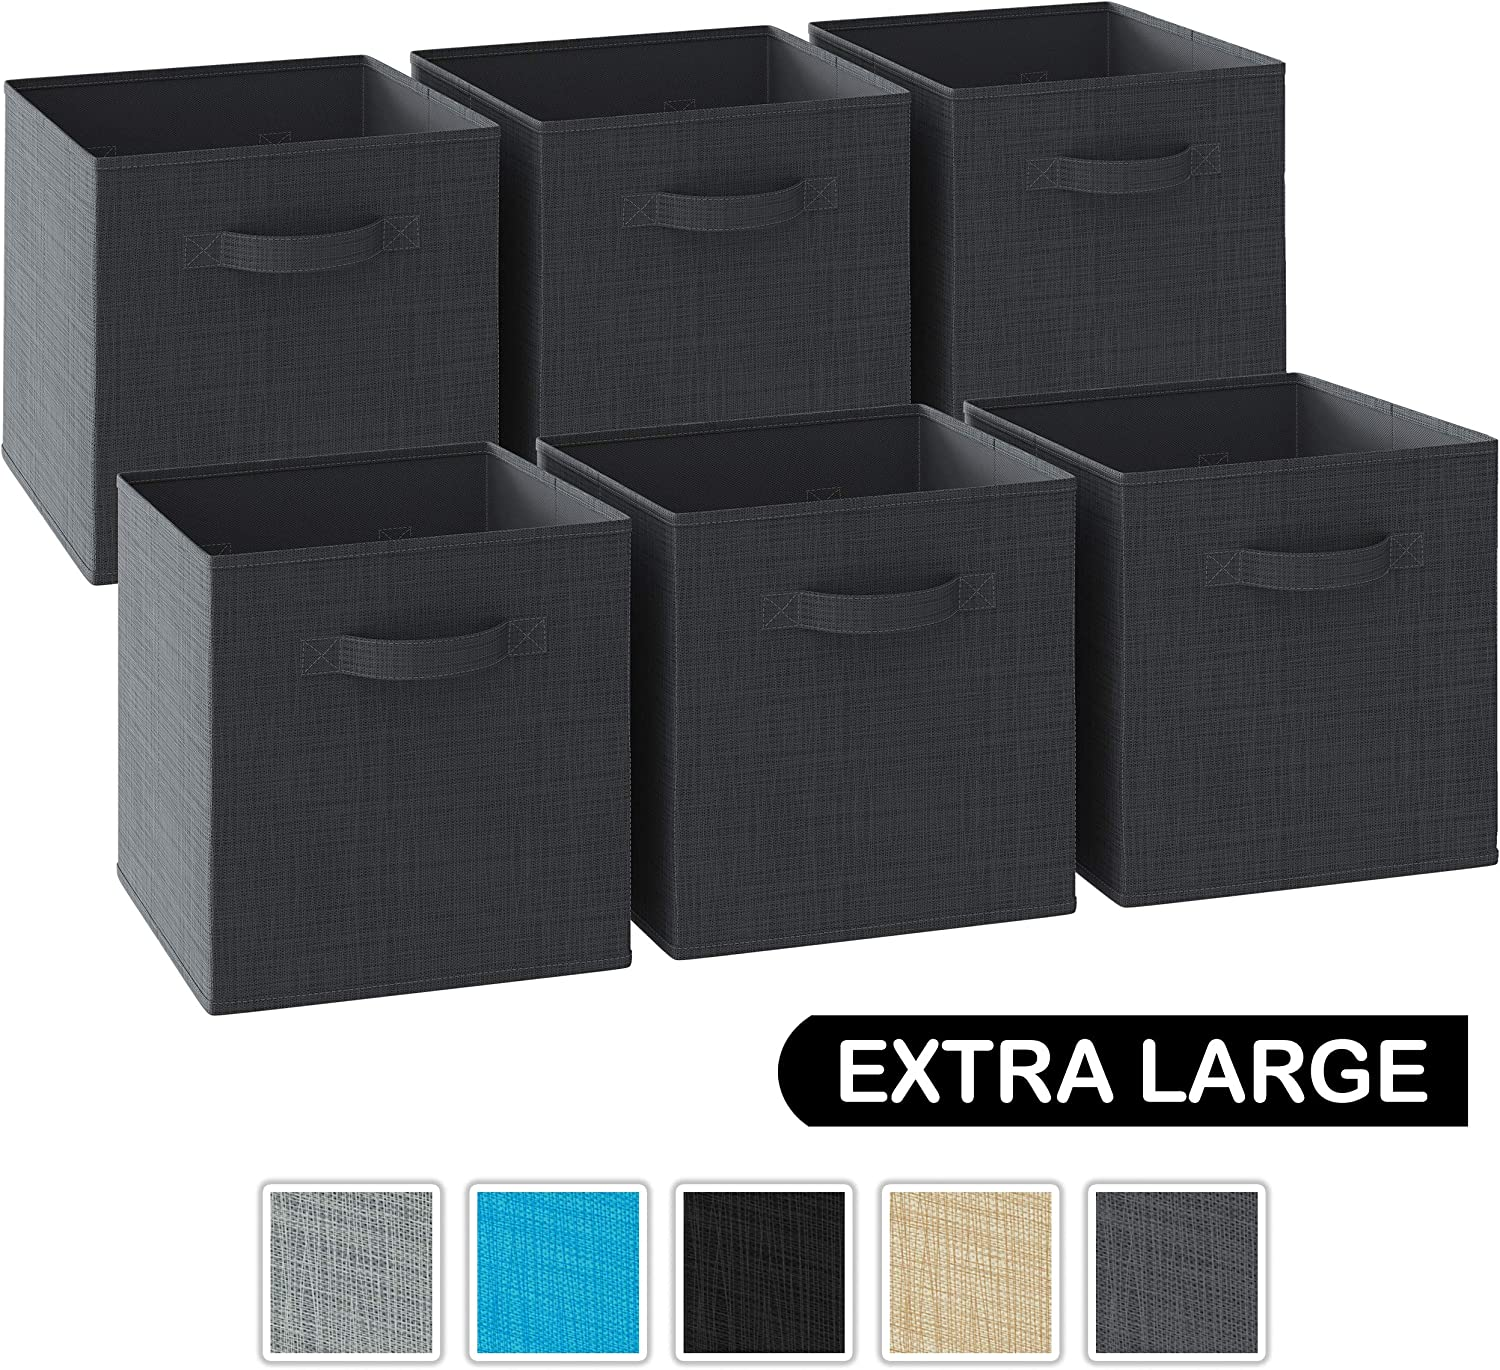 NEATERIZE 13x13x13 Large Storage Cubes - Set of 6 Storage Bins. Features Dual Handles | Cube Storage Bins | Foldable Closet Organizers and Storage | Fabric Box for Home, Office (Dark Grey)